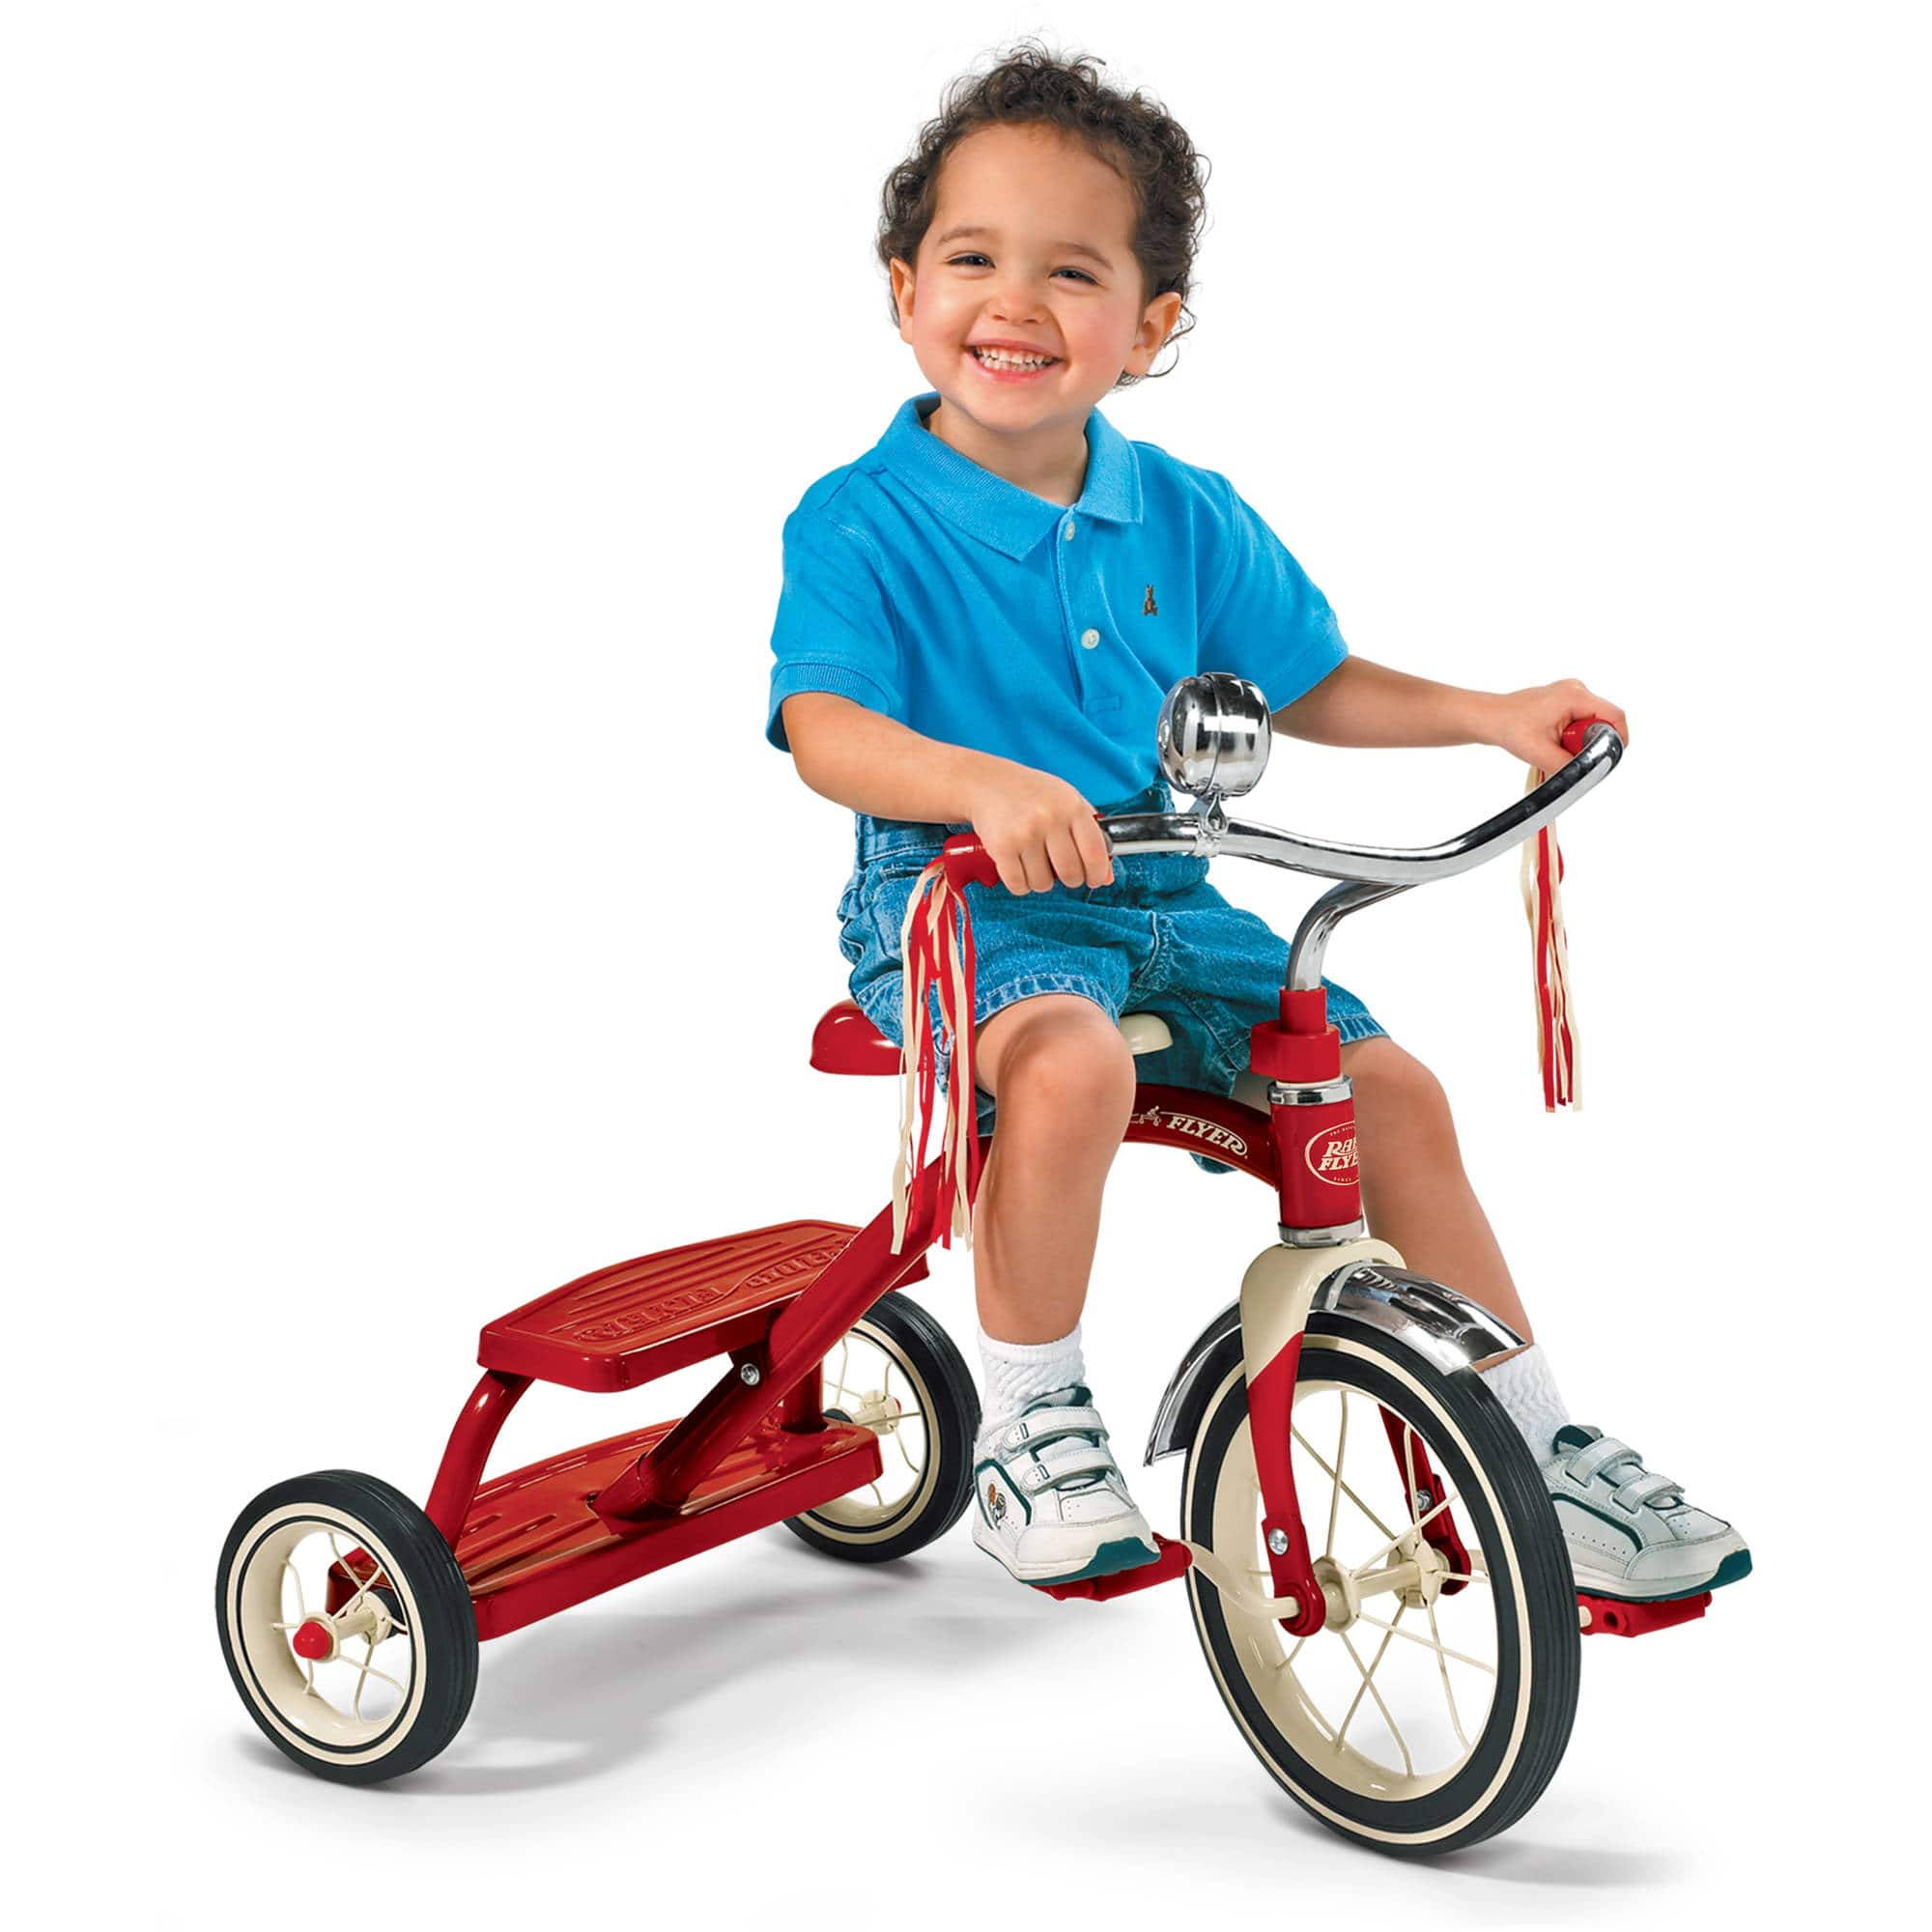 Radio Flyer Classic Tricycle $13 In Store YMMV B&M